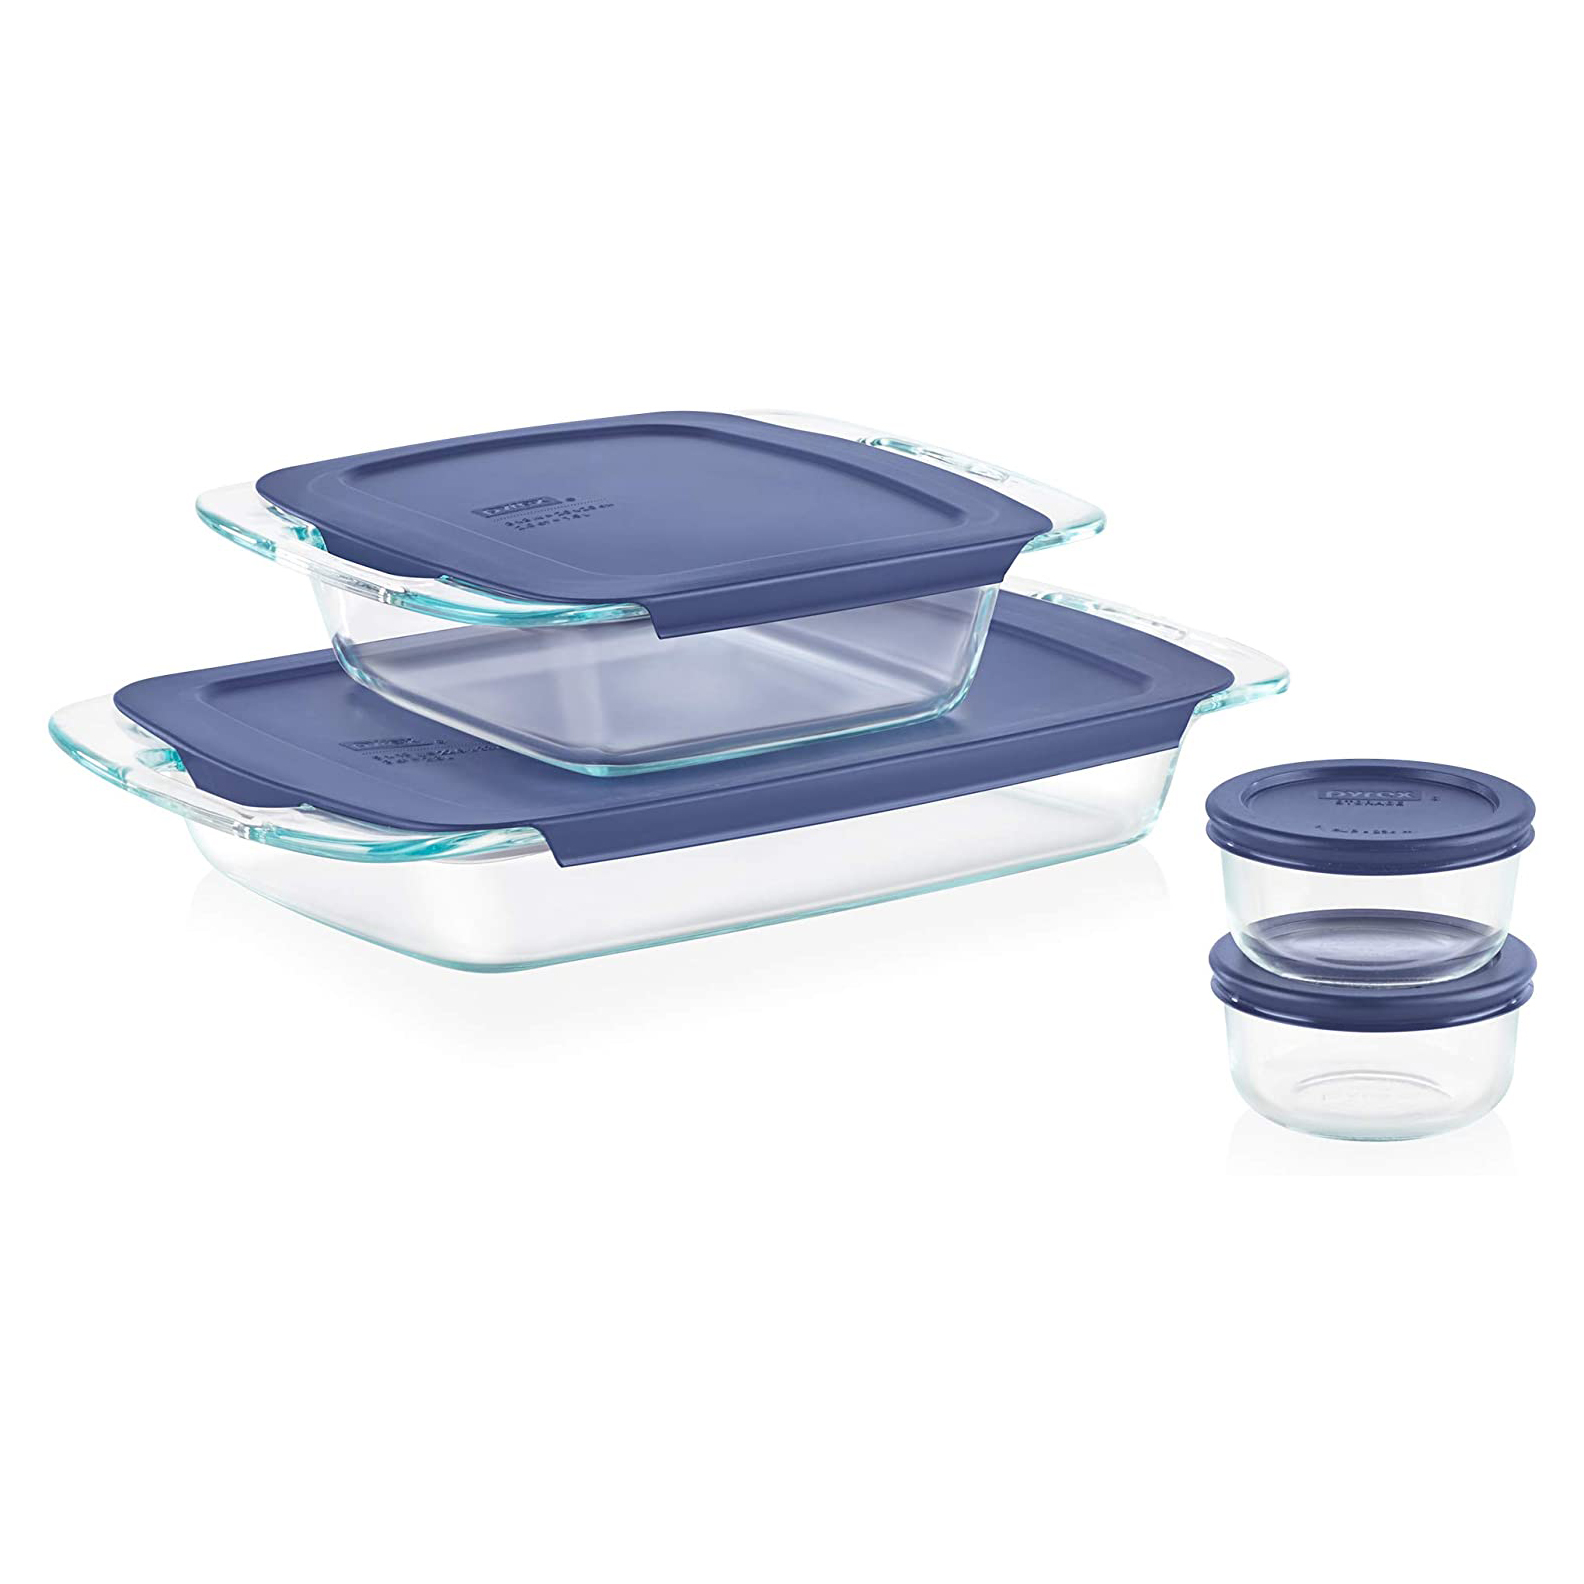 Pyrex Grab Glass Bakeware and Food Storage Set